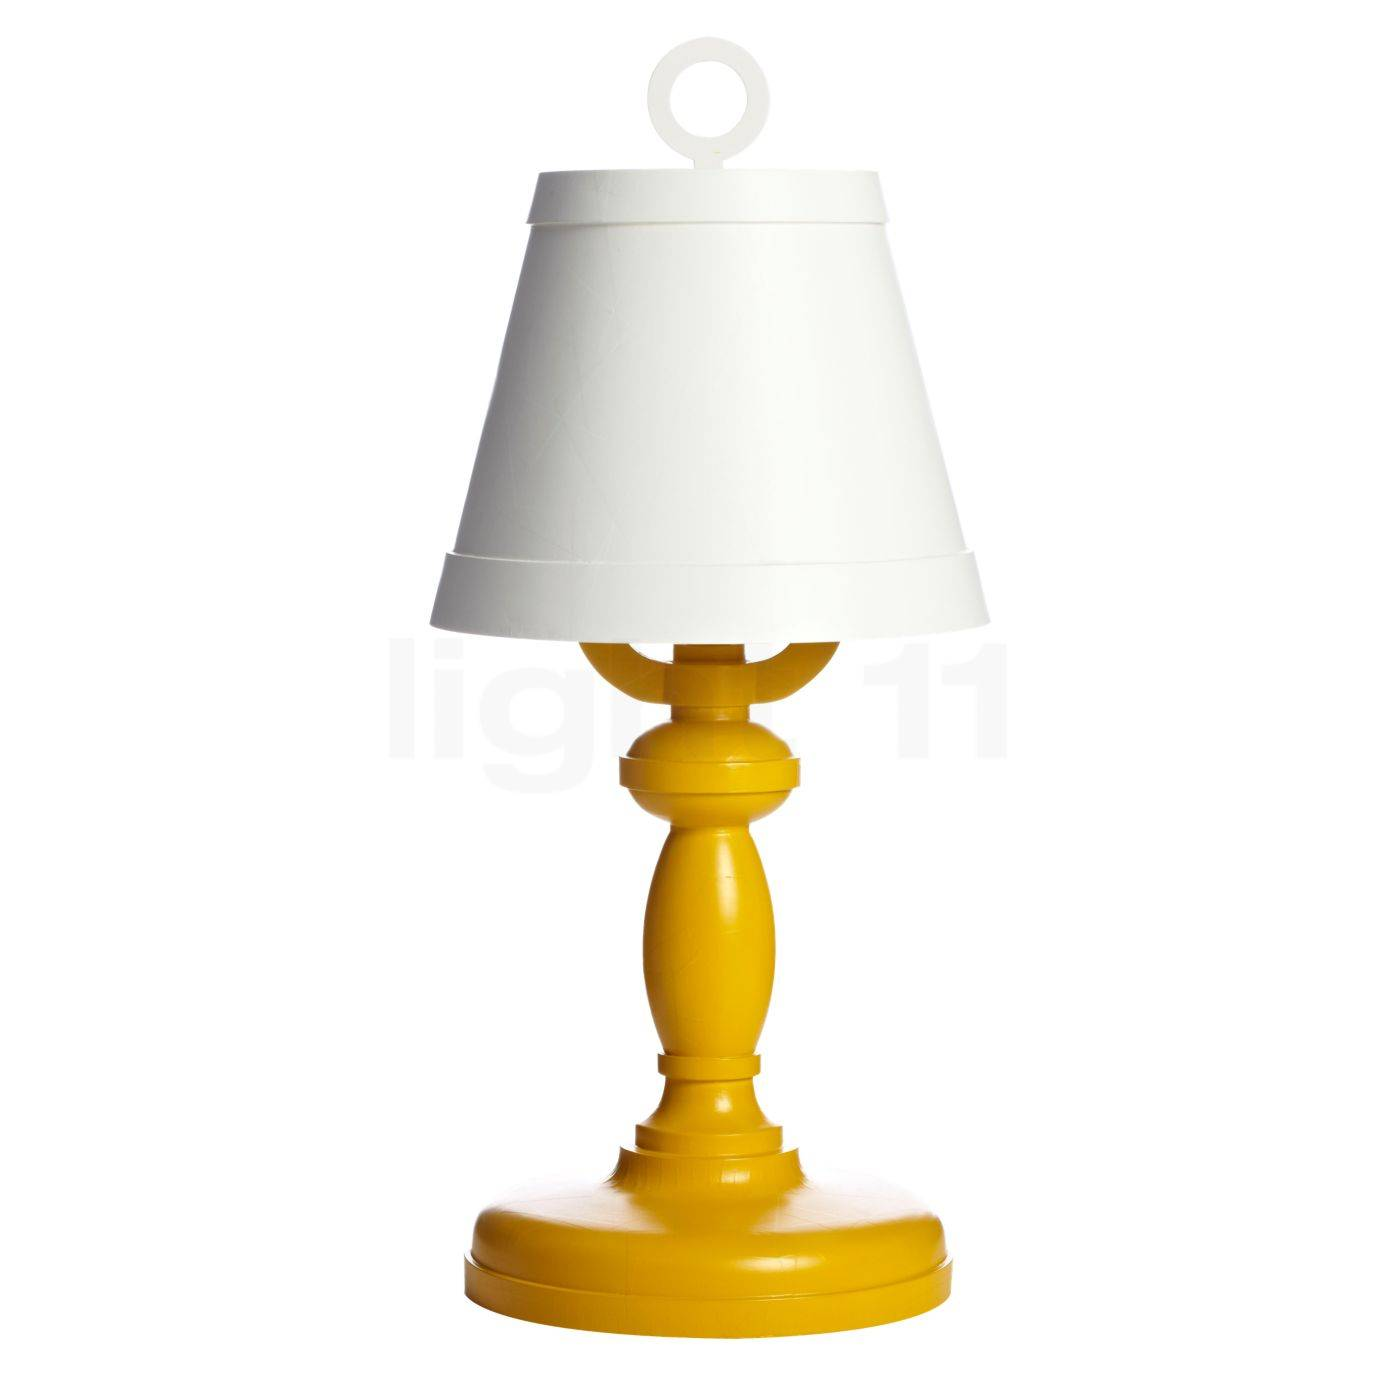 Moooi Paper Lampe de table, blanc/orange